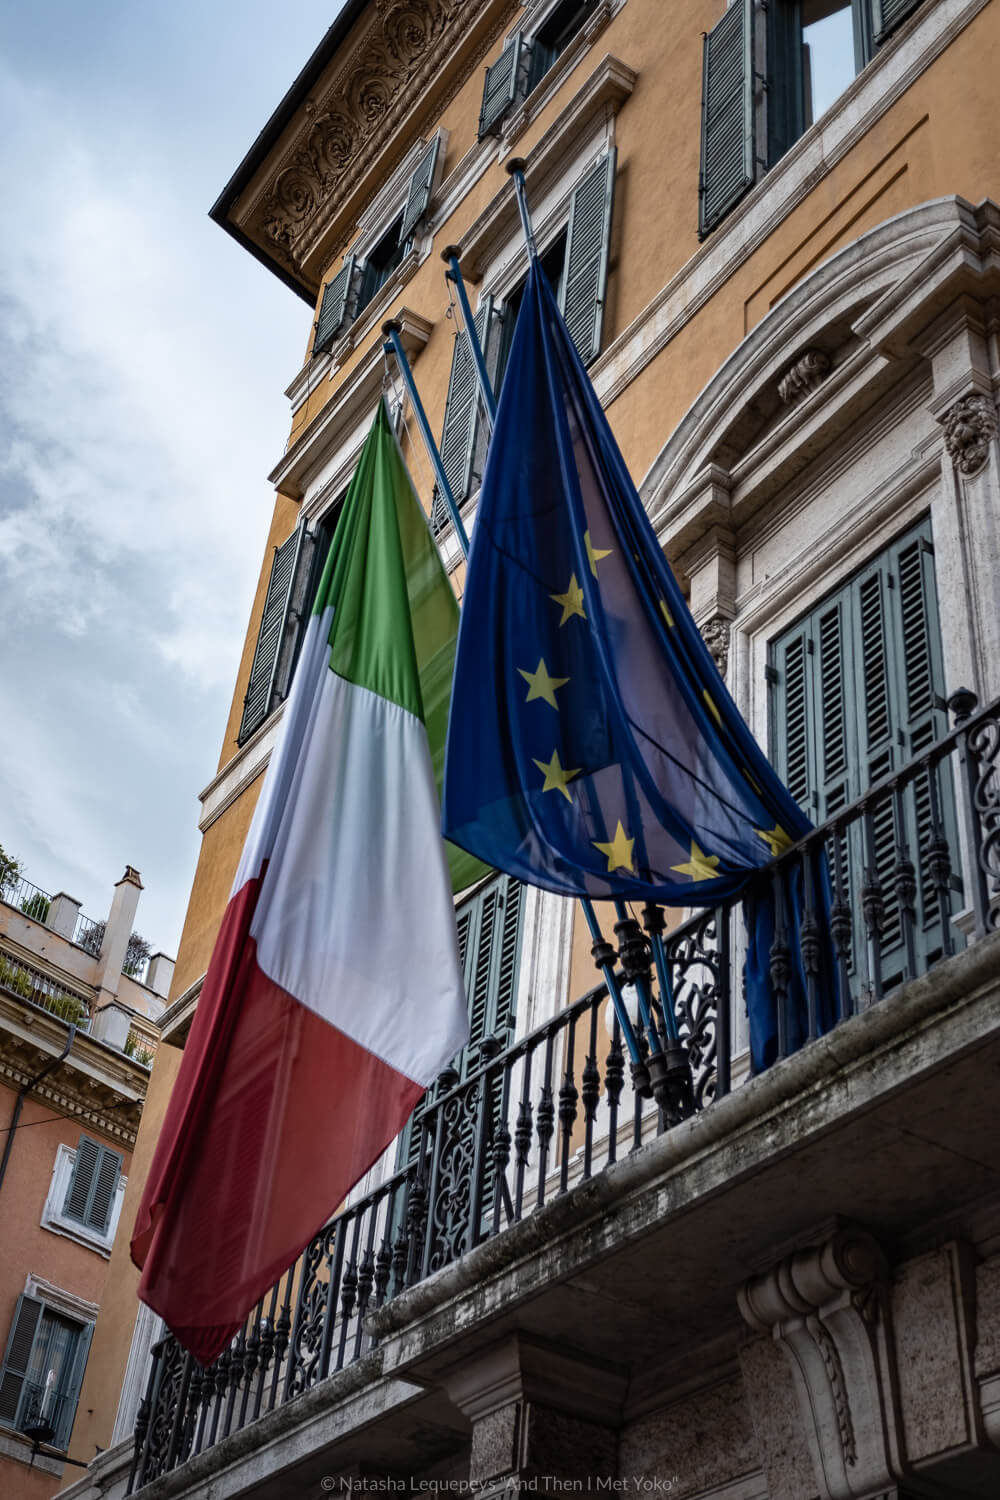 """Italian and European Union flags, Rome. Travel photography and guide by © Natasha Lequepeys for """"And Then I Met Yoko"""". #rome #italy #travelblog #travelphotography"""